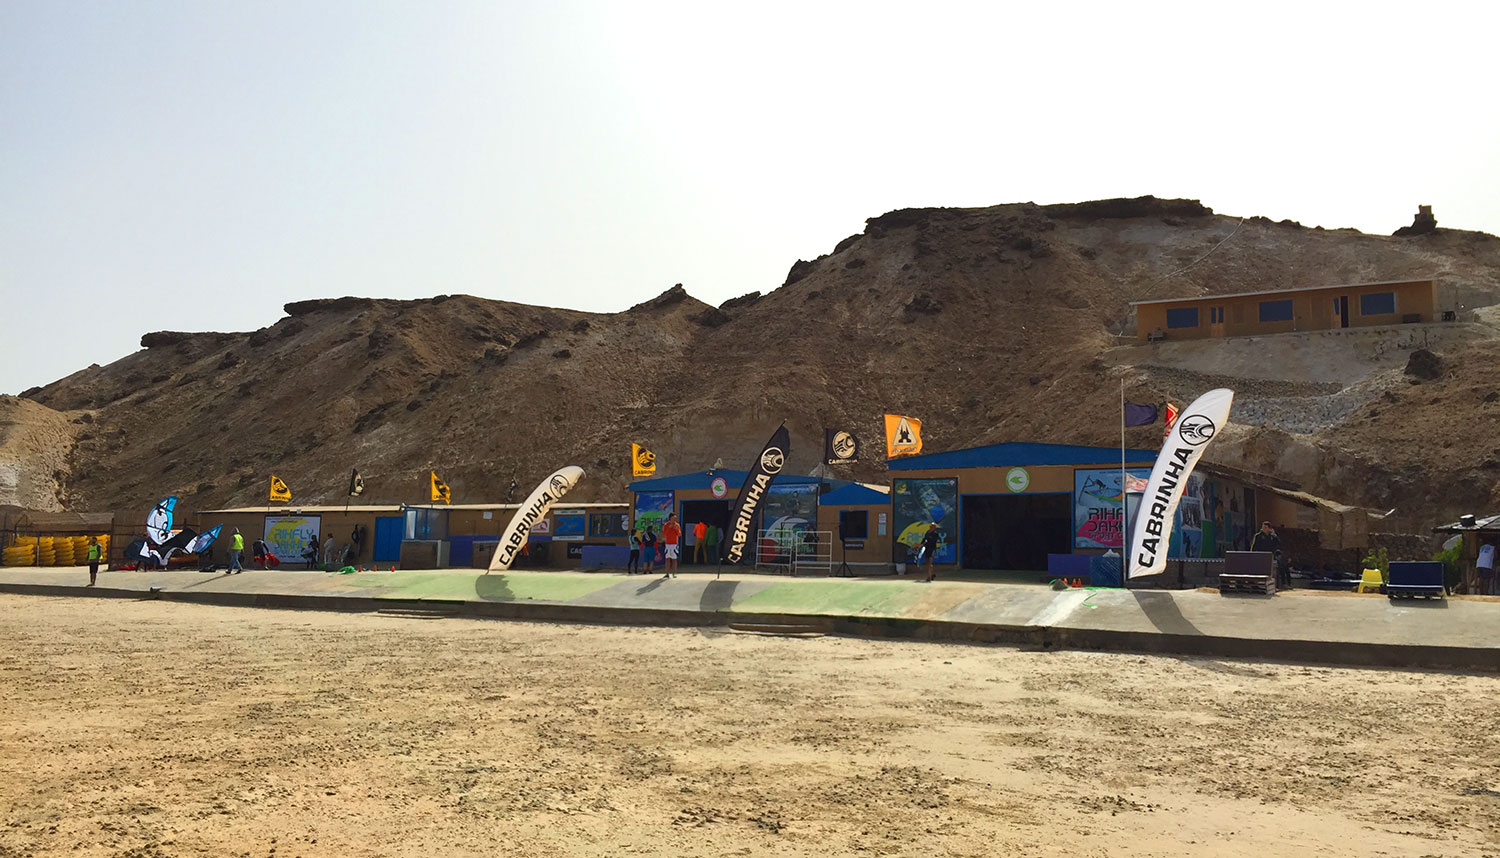 Kitesurf centre at Dakhla Spirit